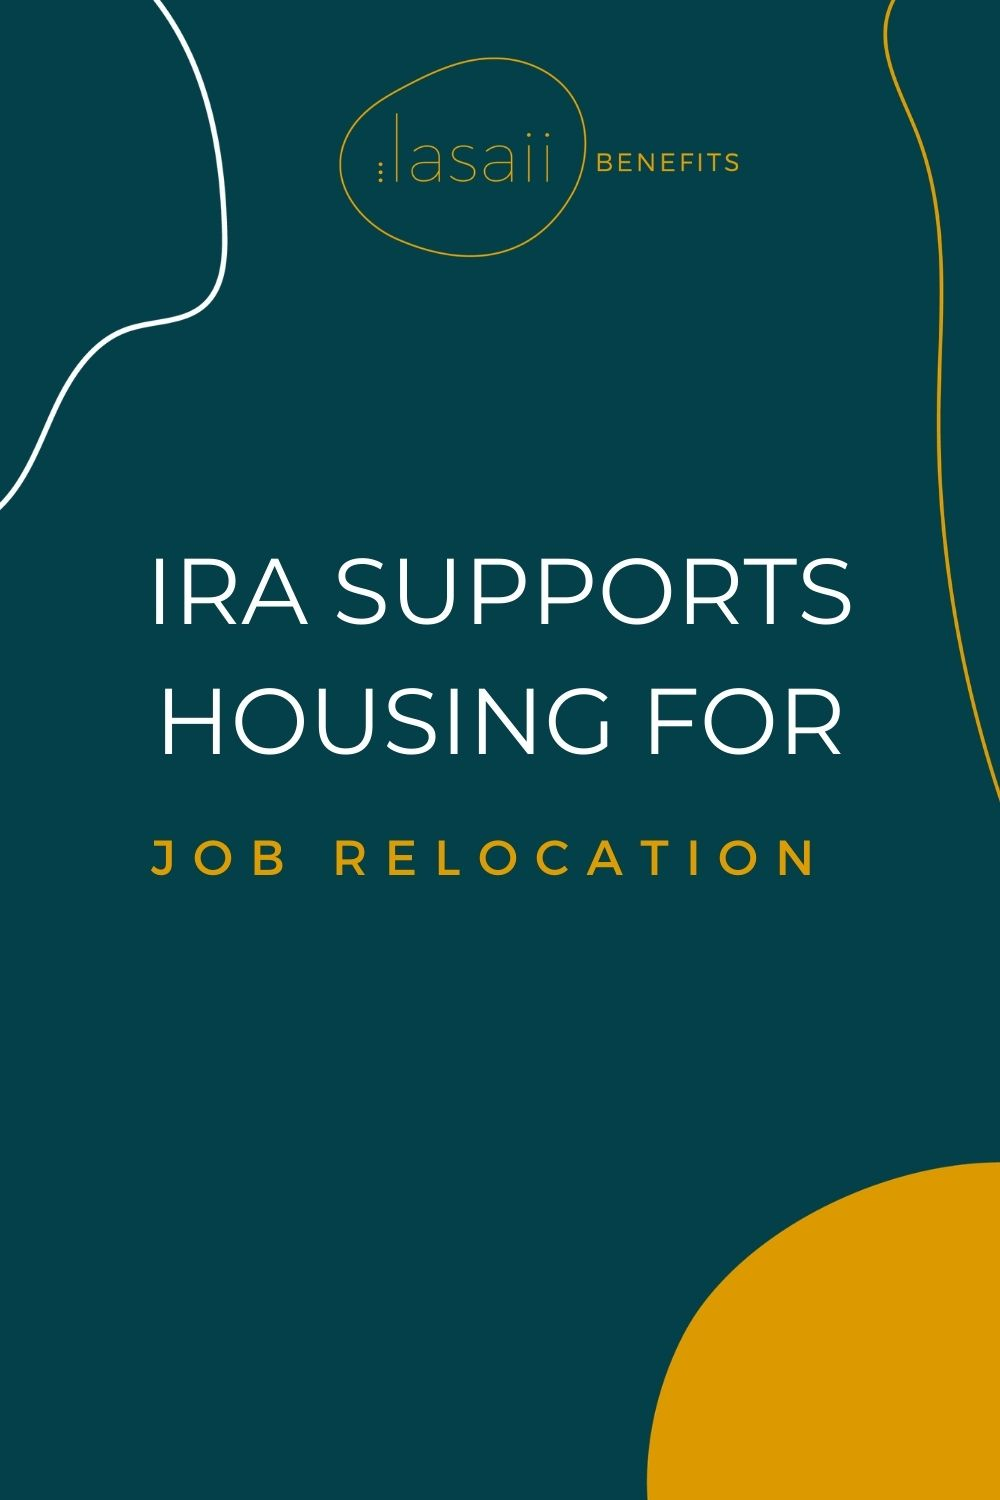 IRA supports housing for job relocations | Lasaii Benefits